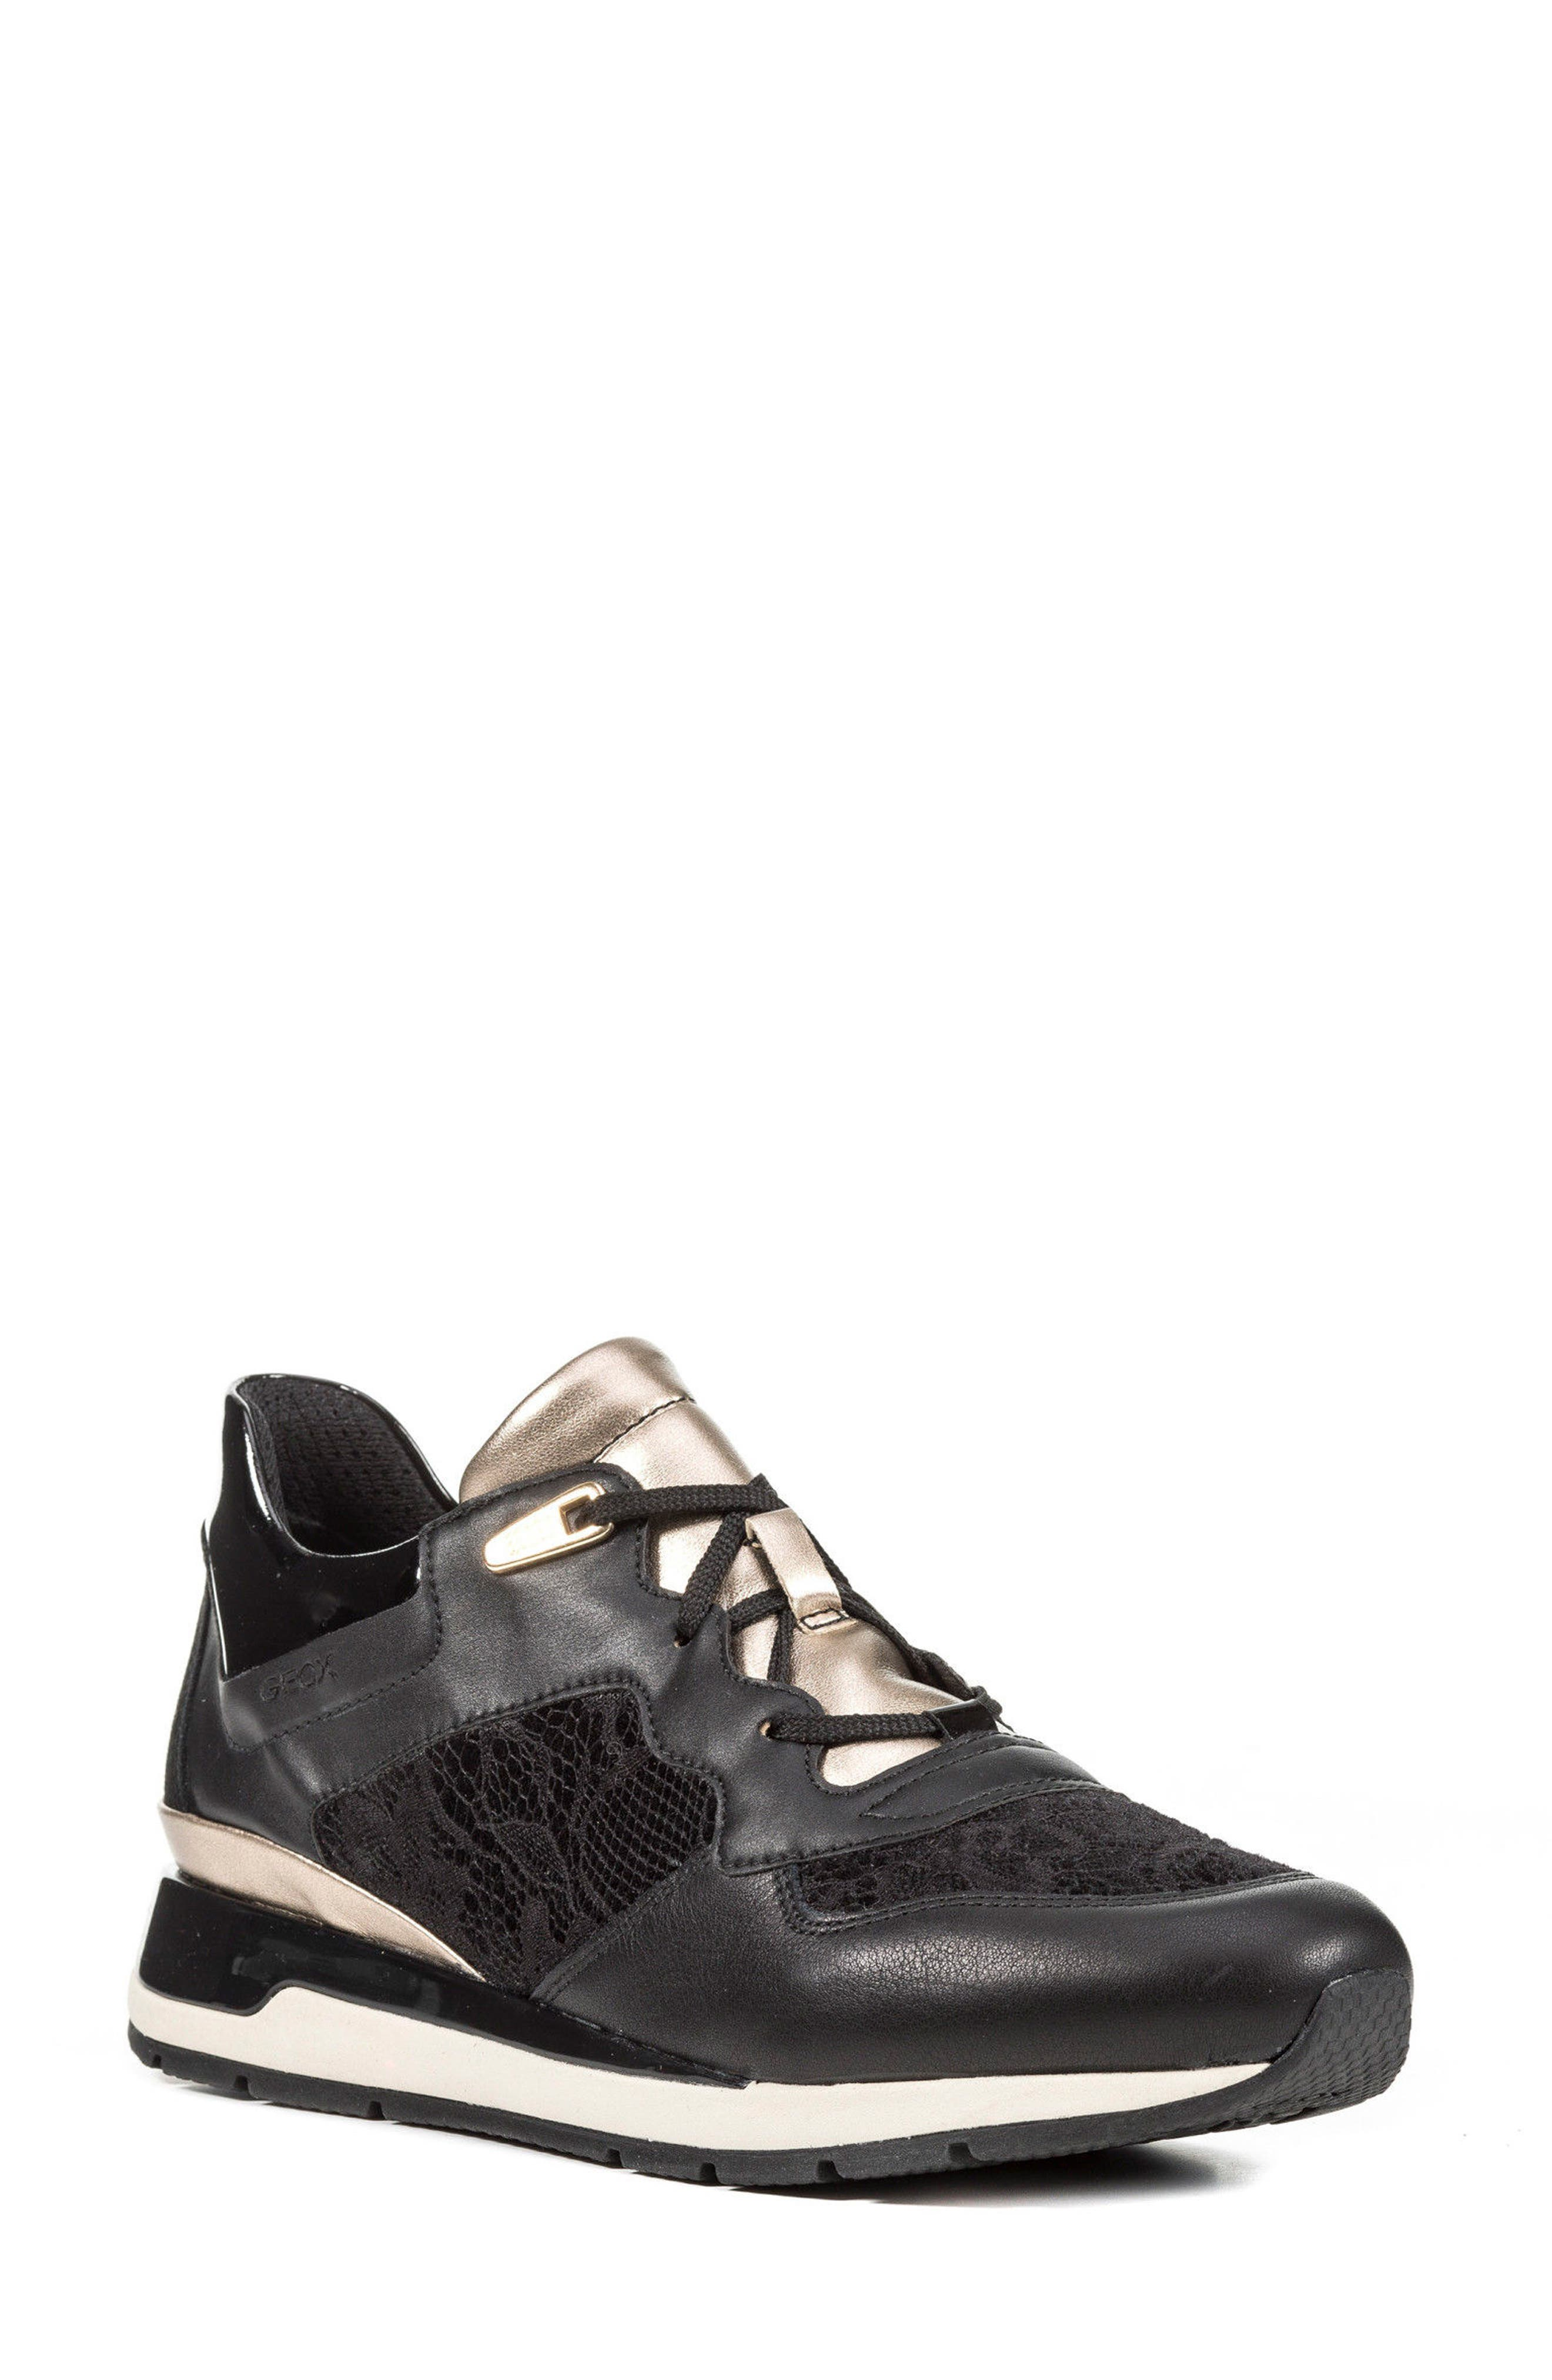 Shahira Sneaker,                         Main,                         color, Black Leather